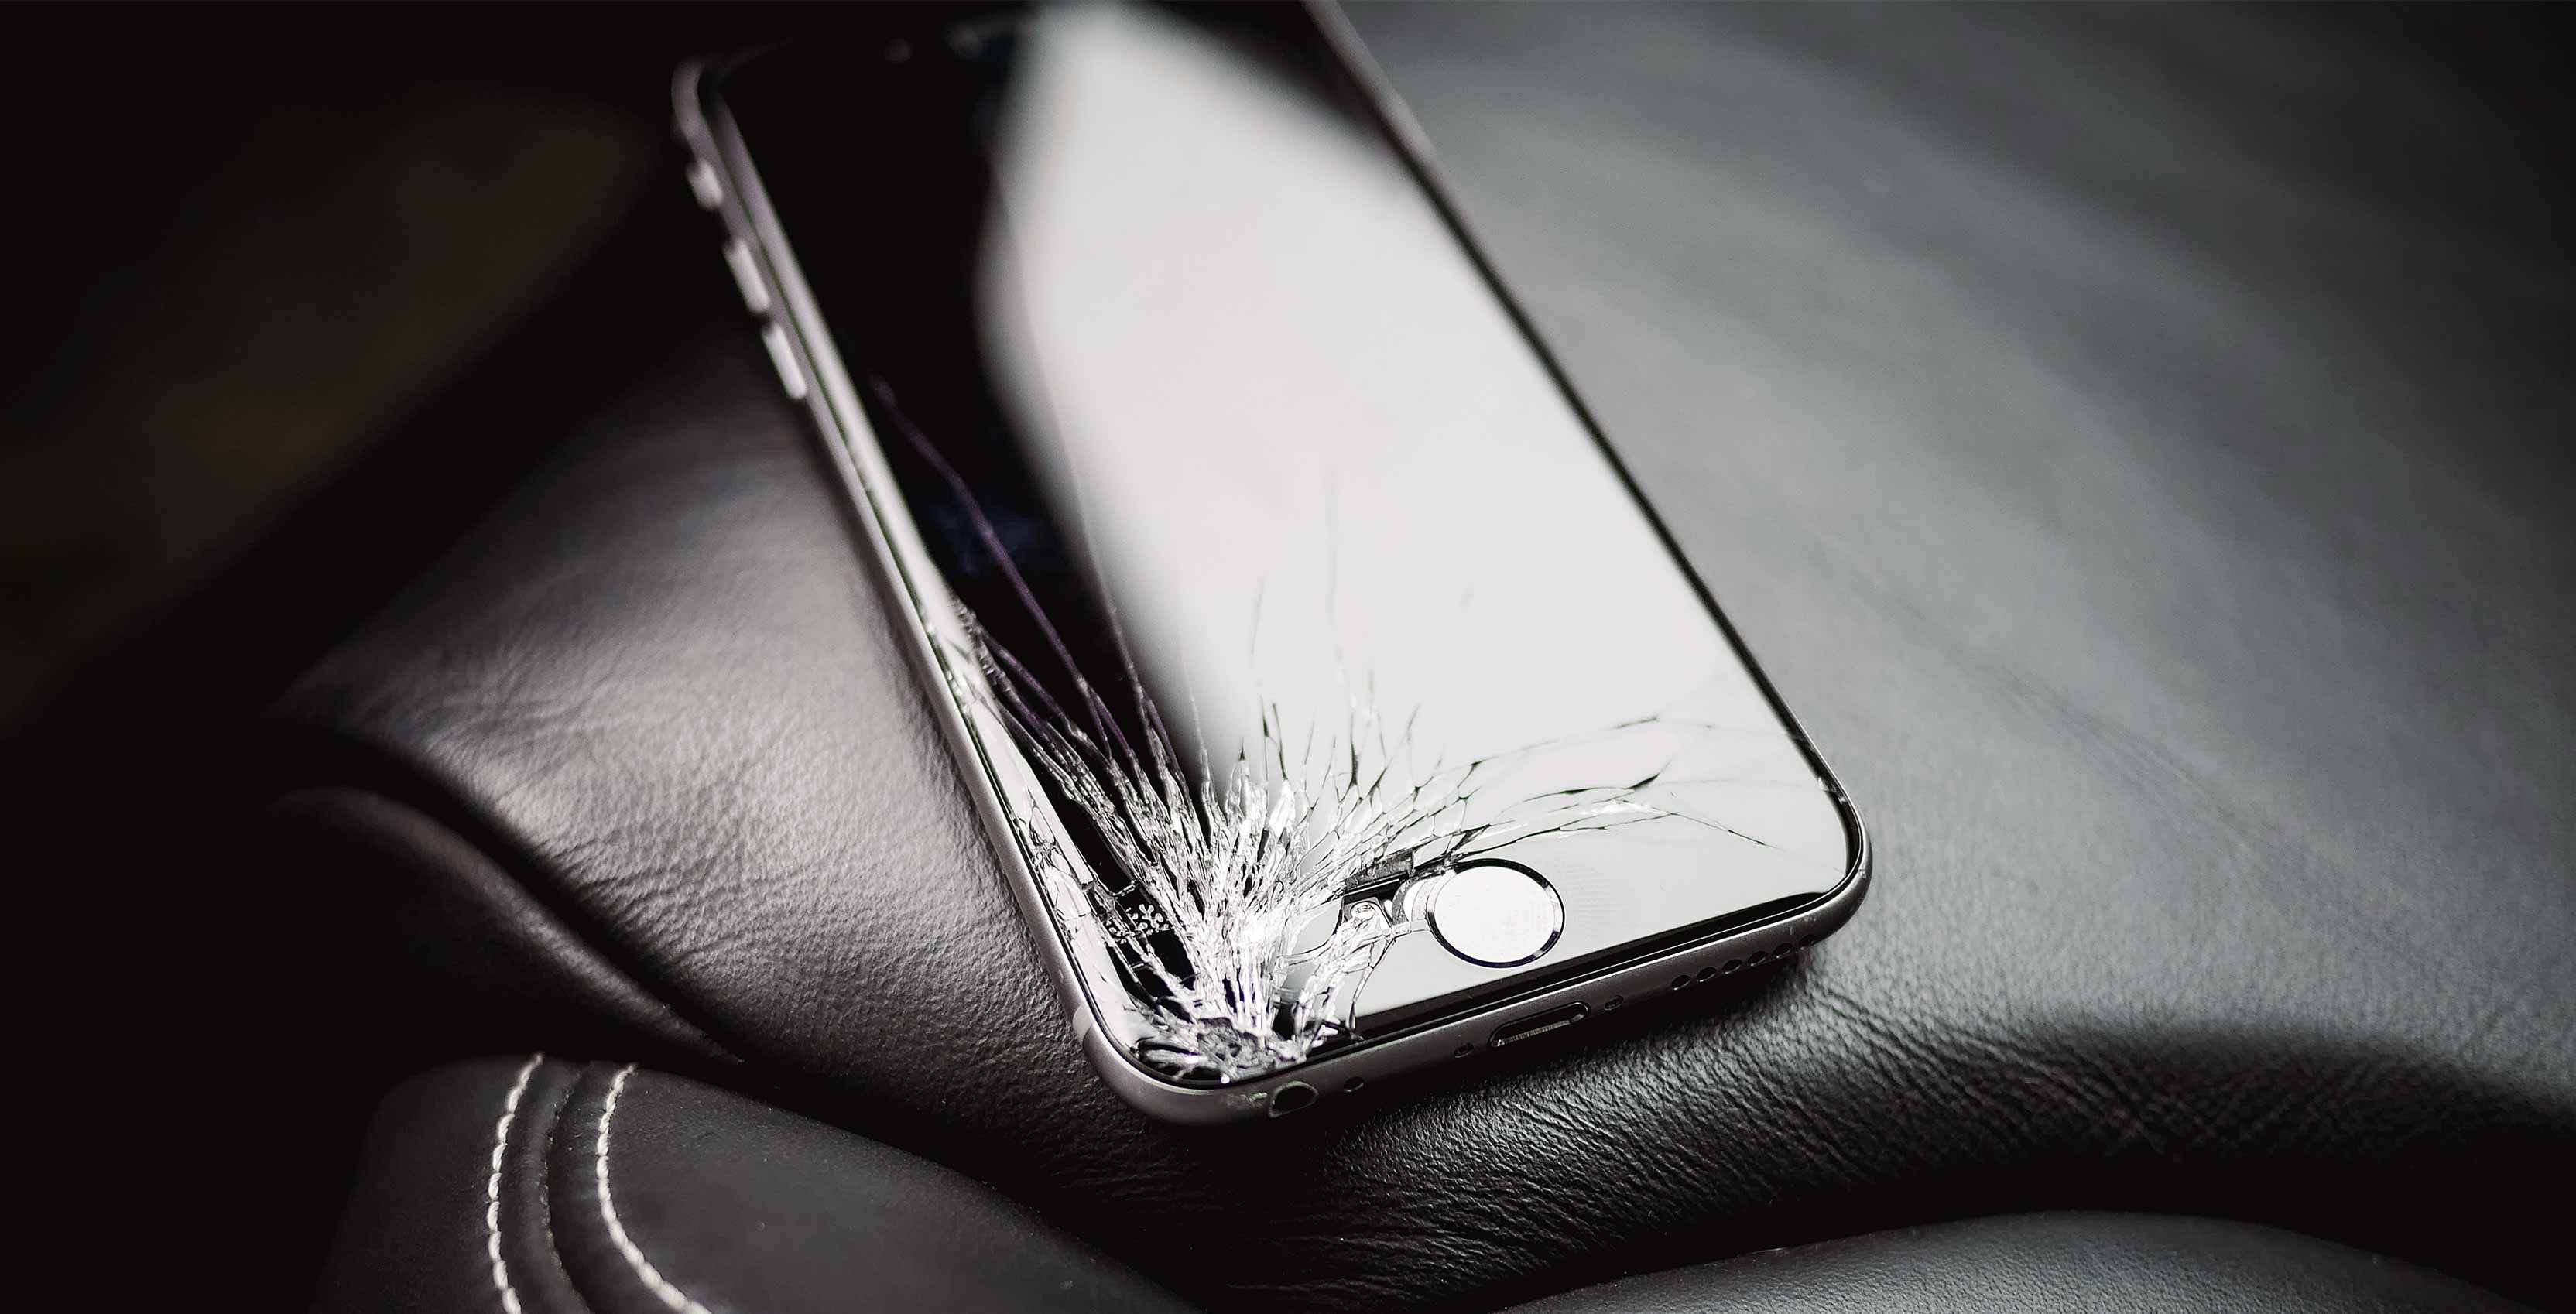 broken iphone on leather car seat - asurion